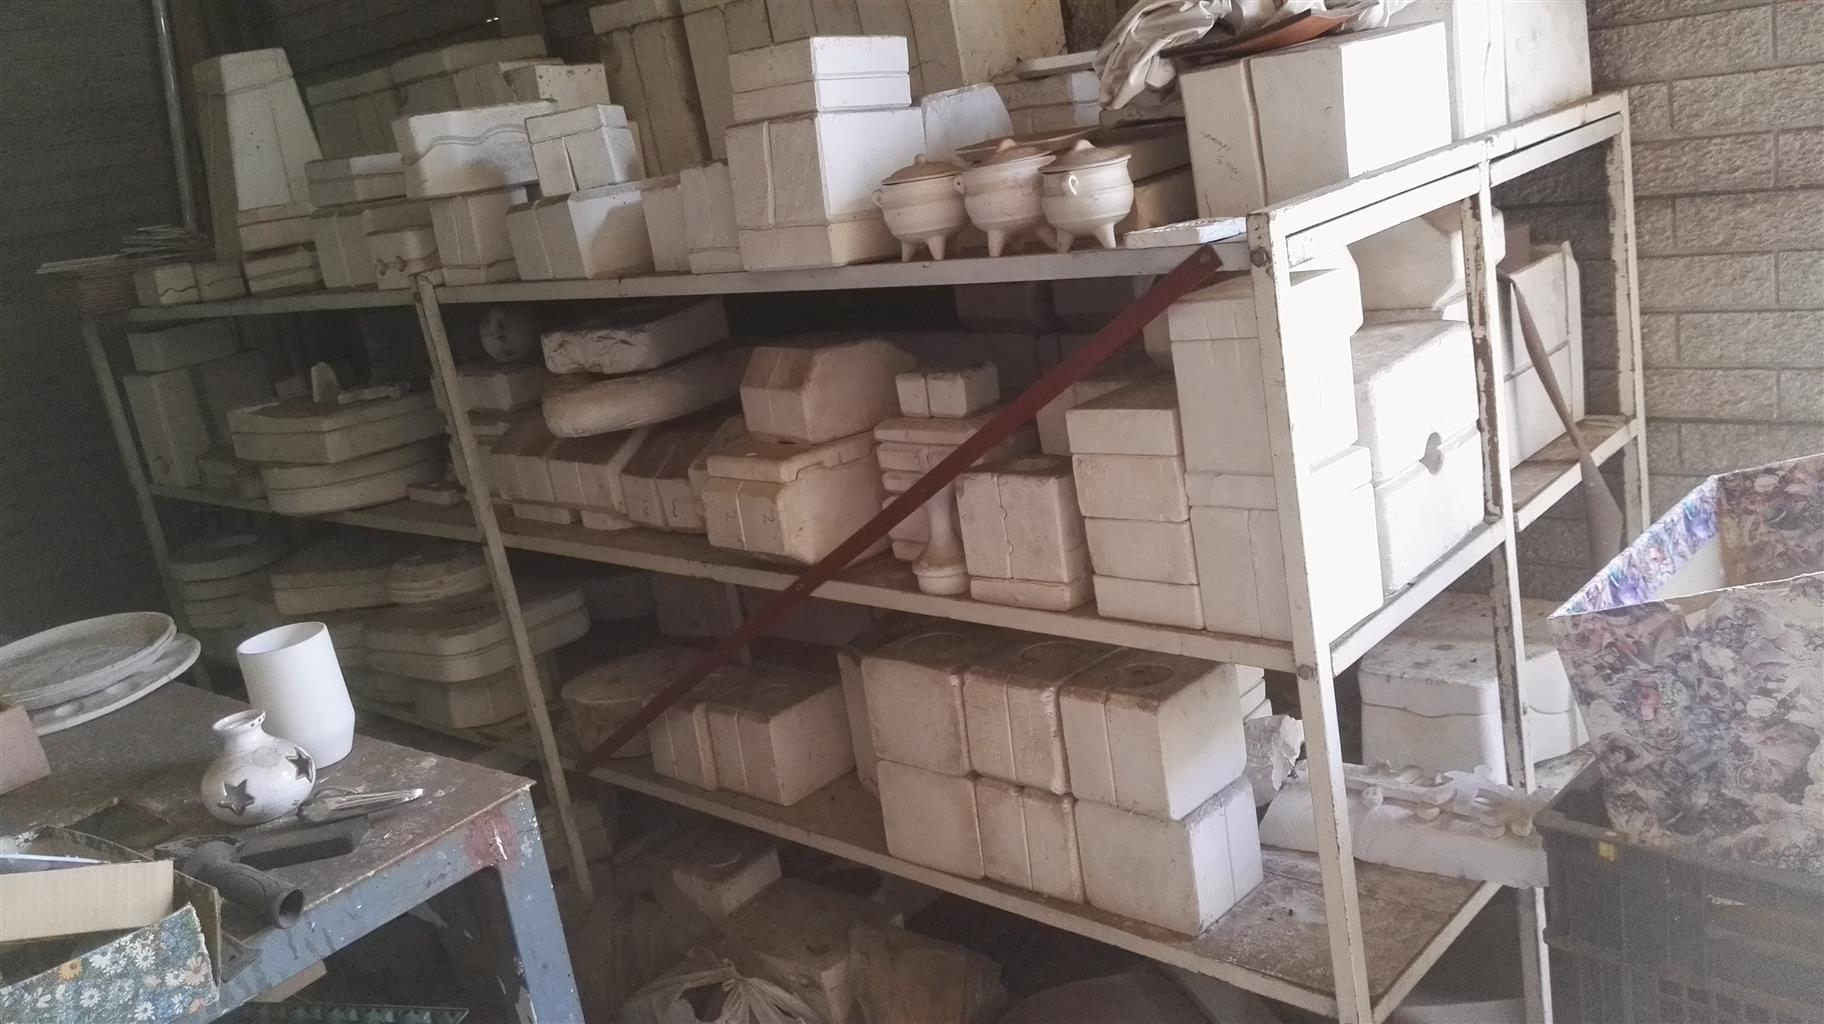 Pottery business equipment